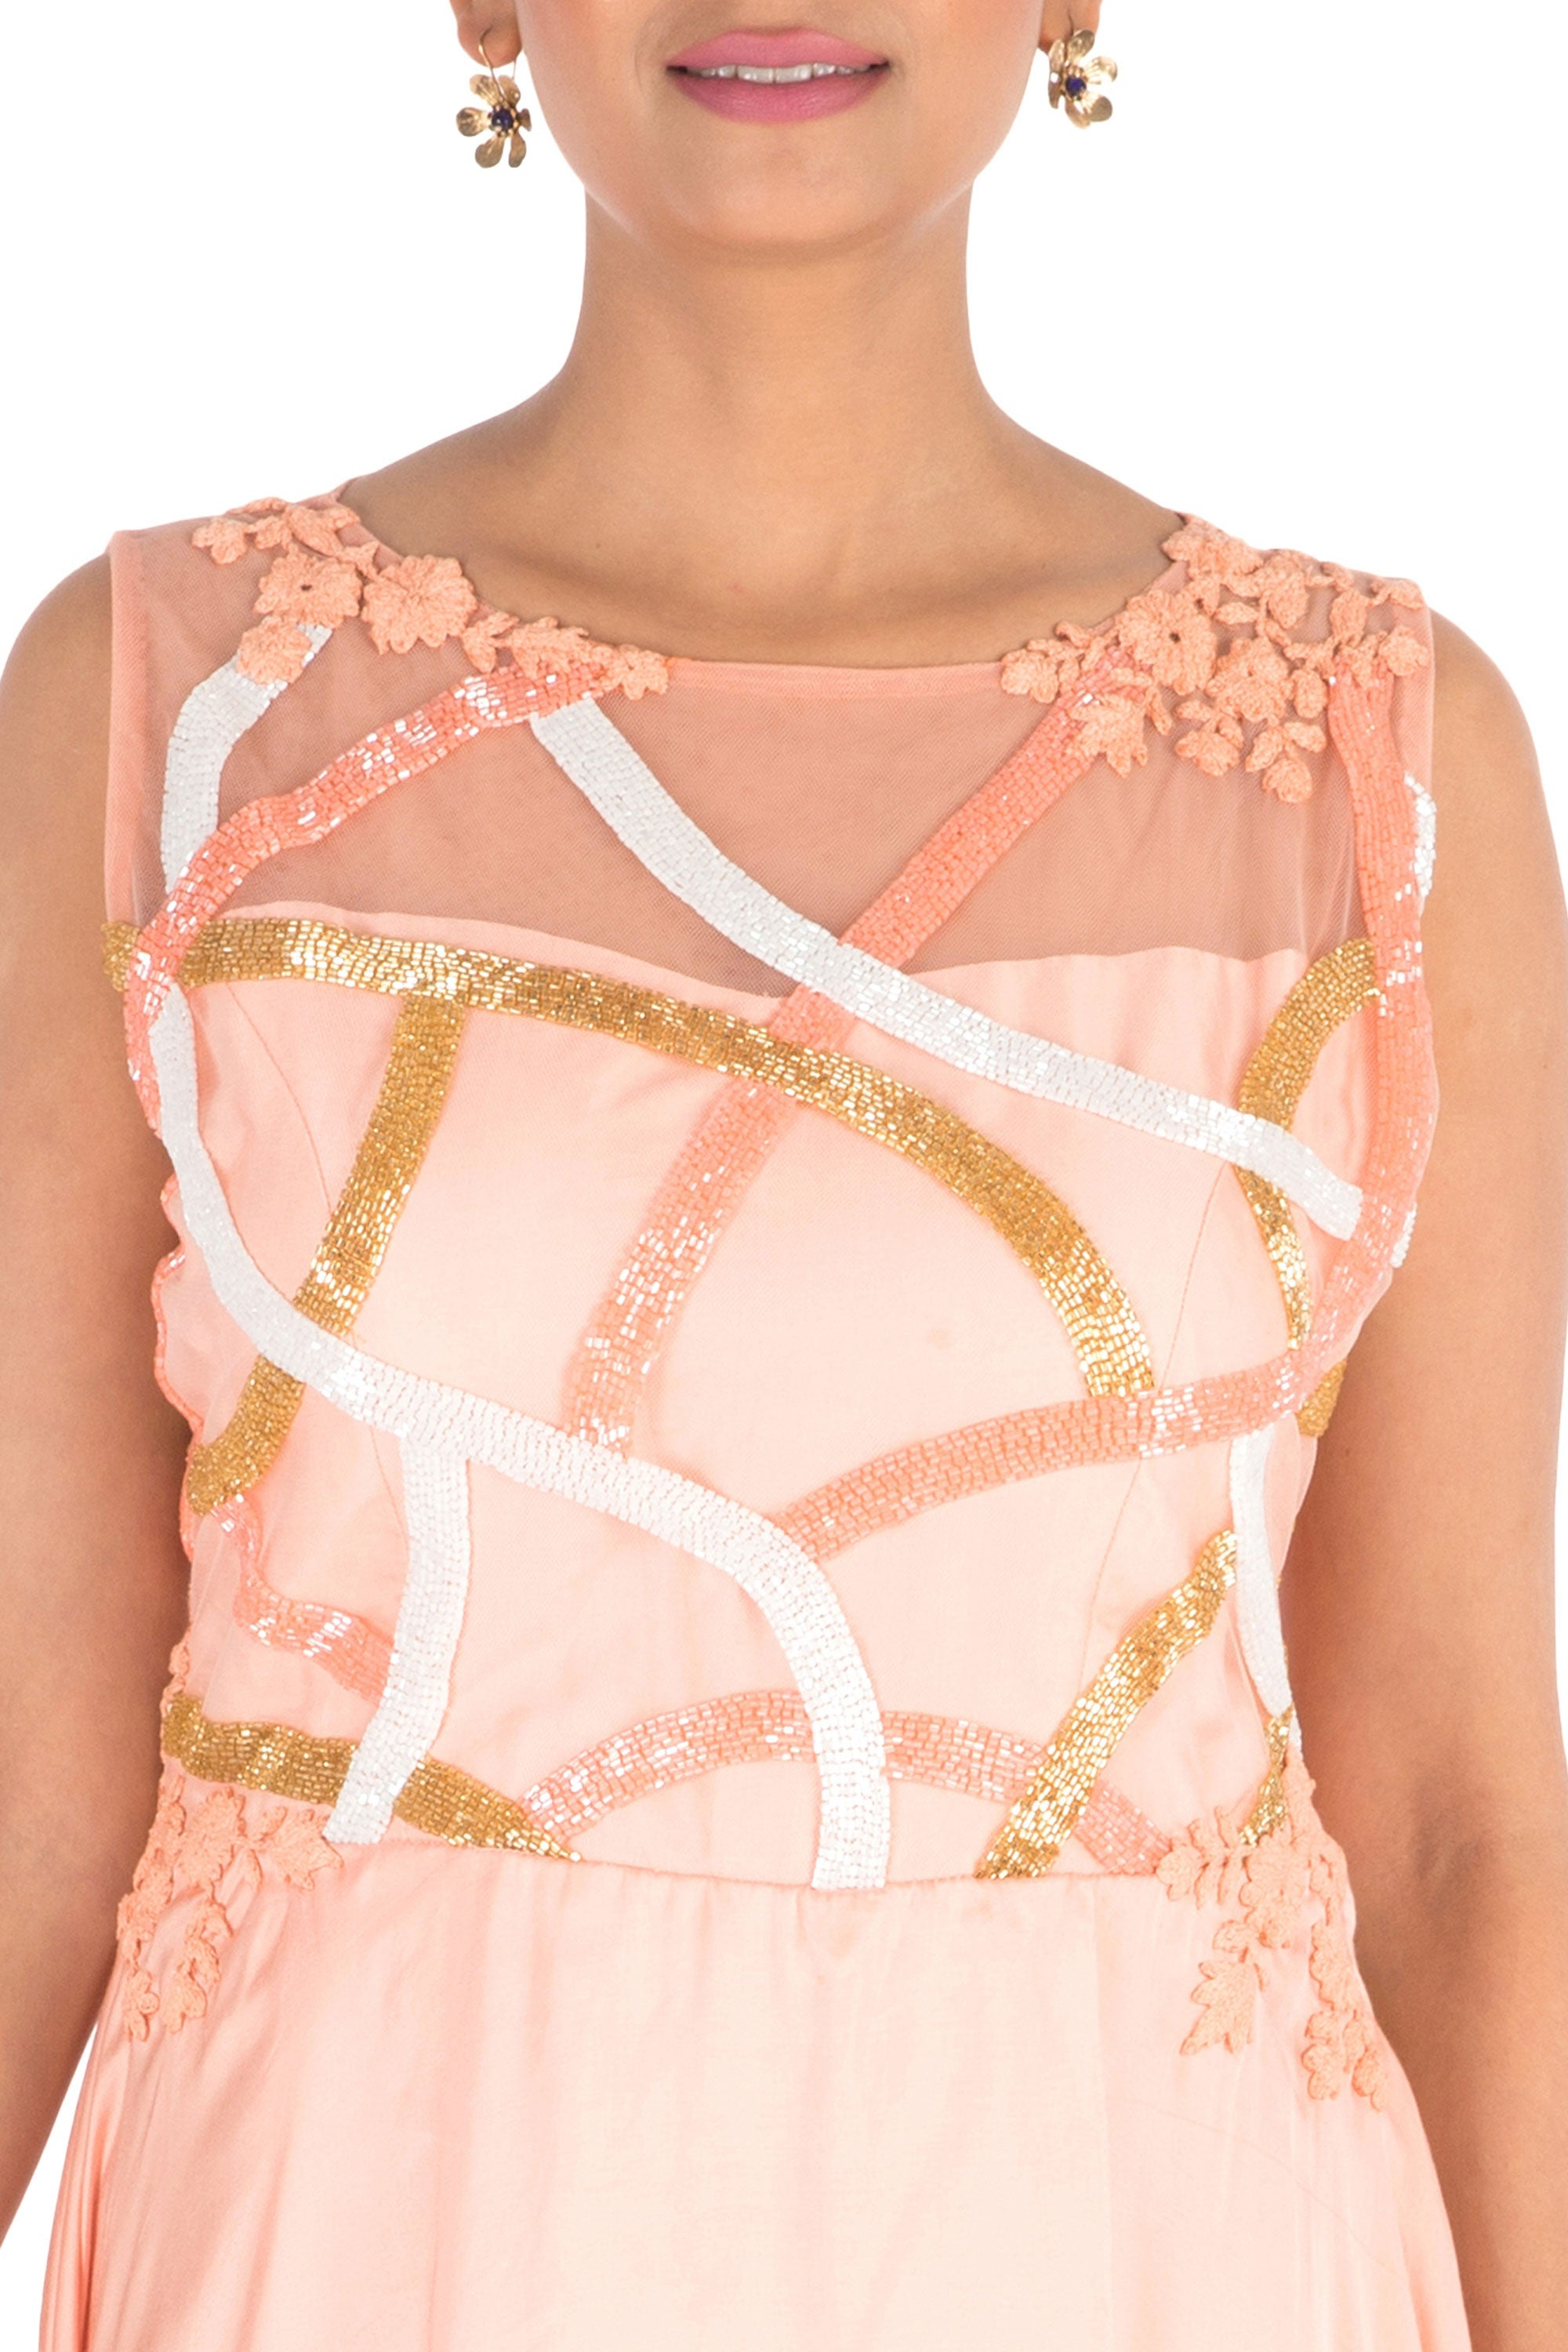 Hand Embroidered Peach Overlap Gown Closeup